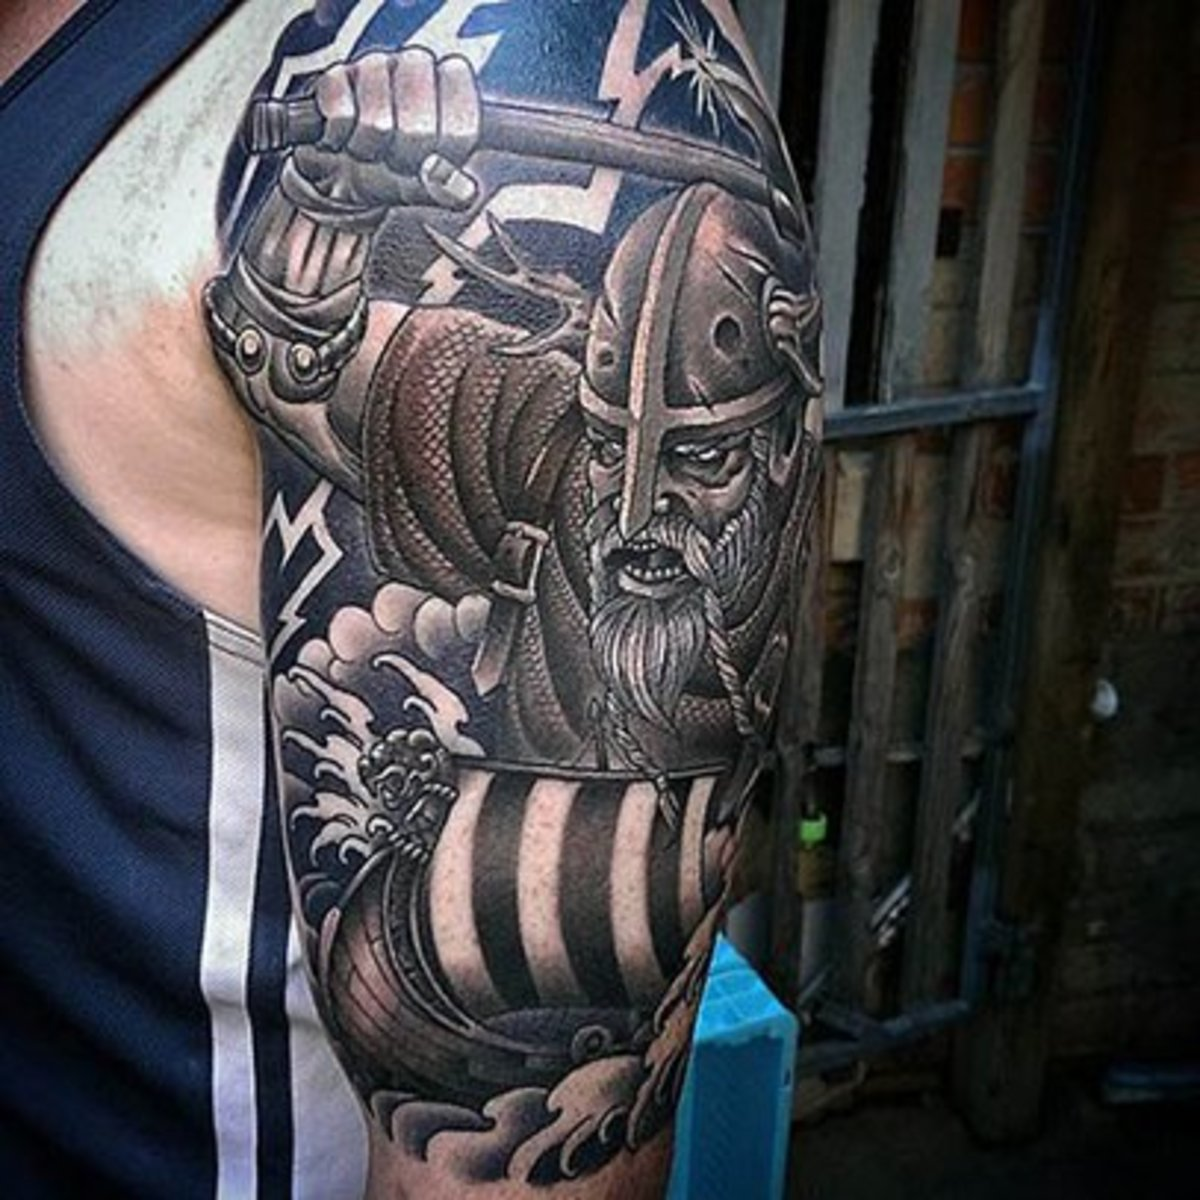 31 viking tattoos to inspire the norse in you | inked magazine